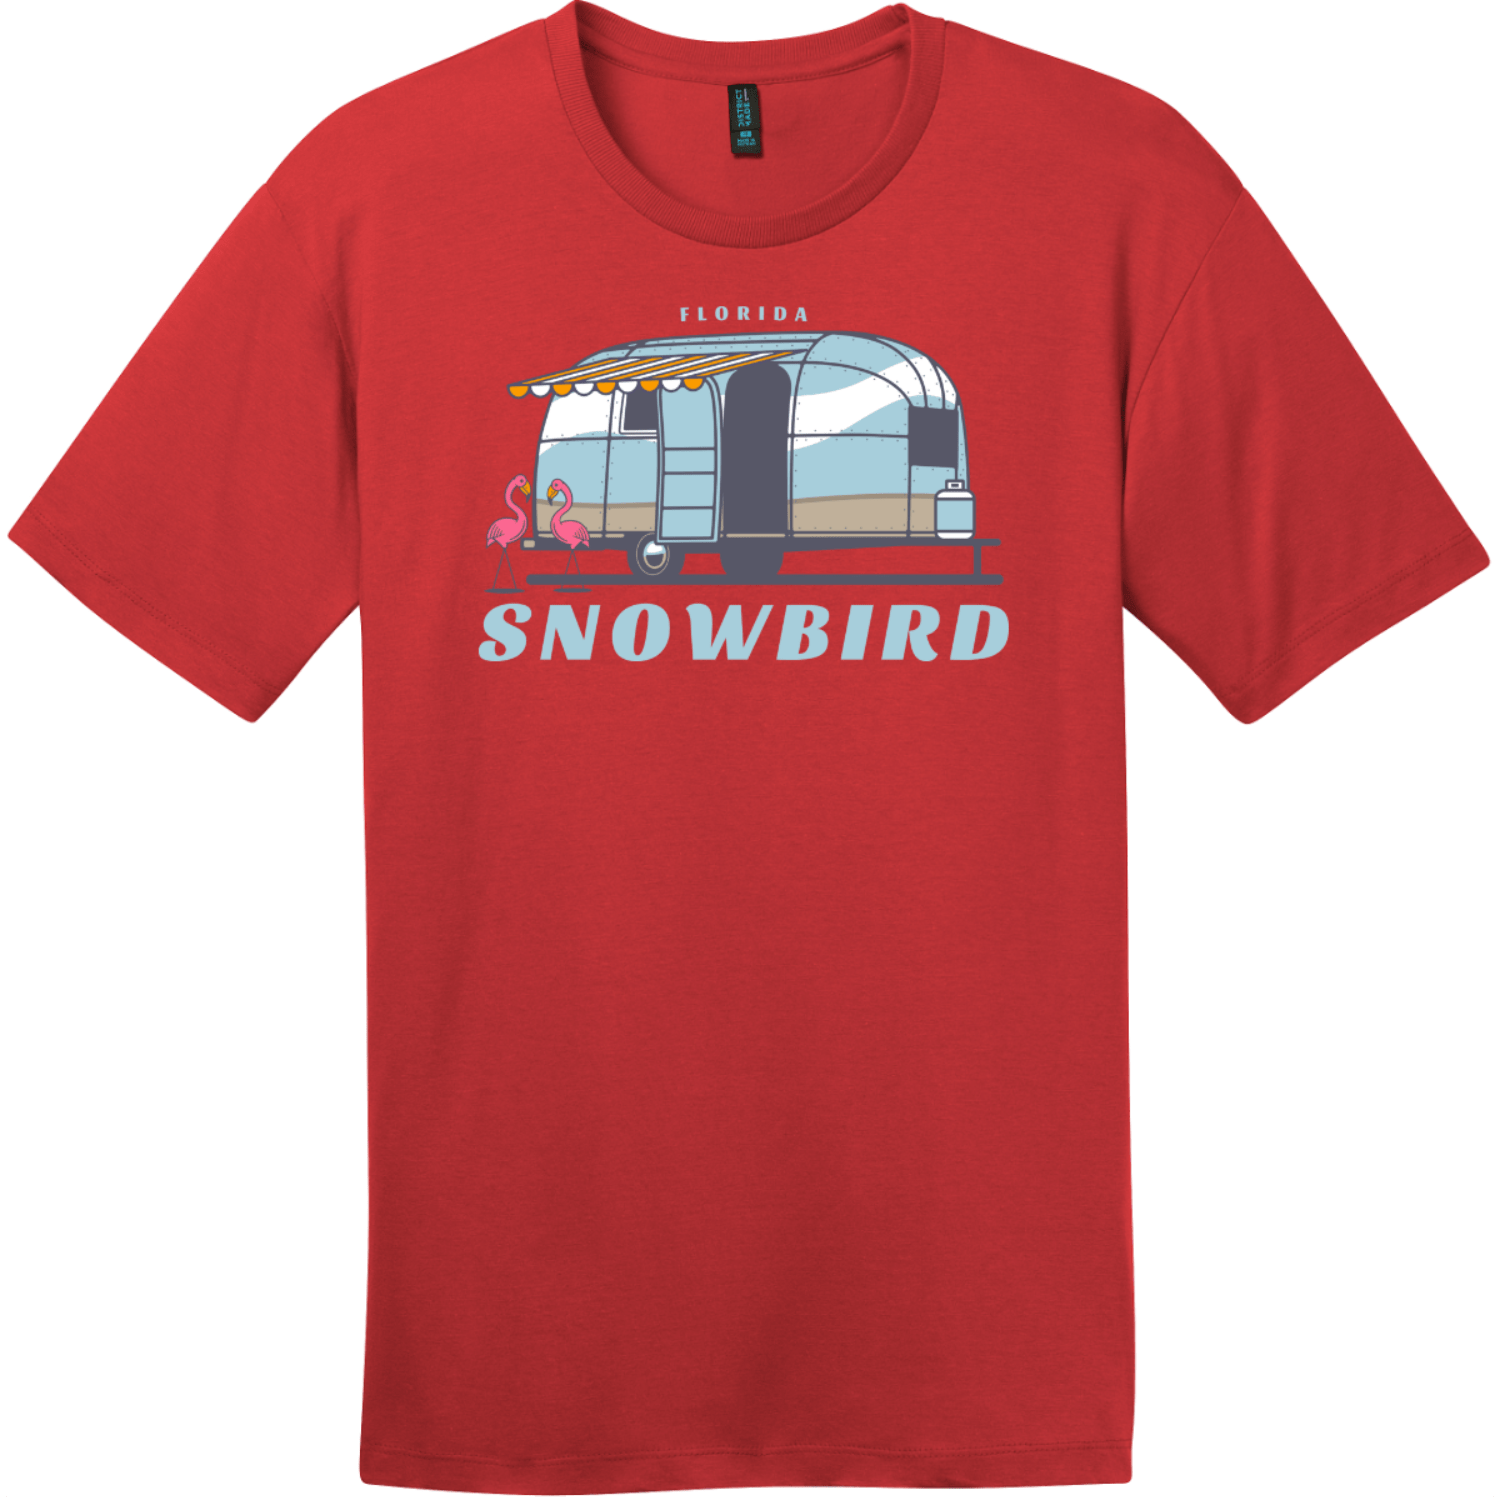 Florida Snowbird T-Shirt Classic Red District Perfect Weight Tee DT104